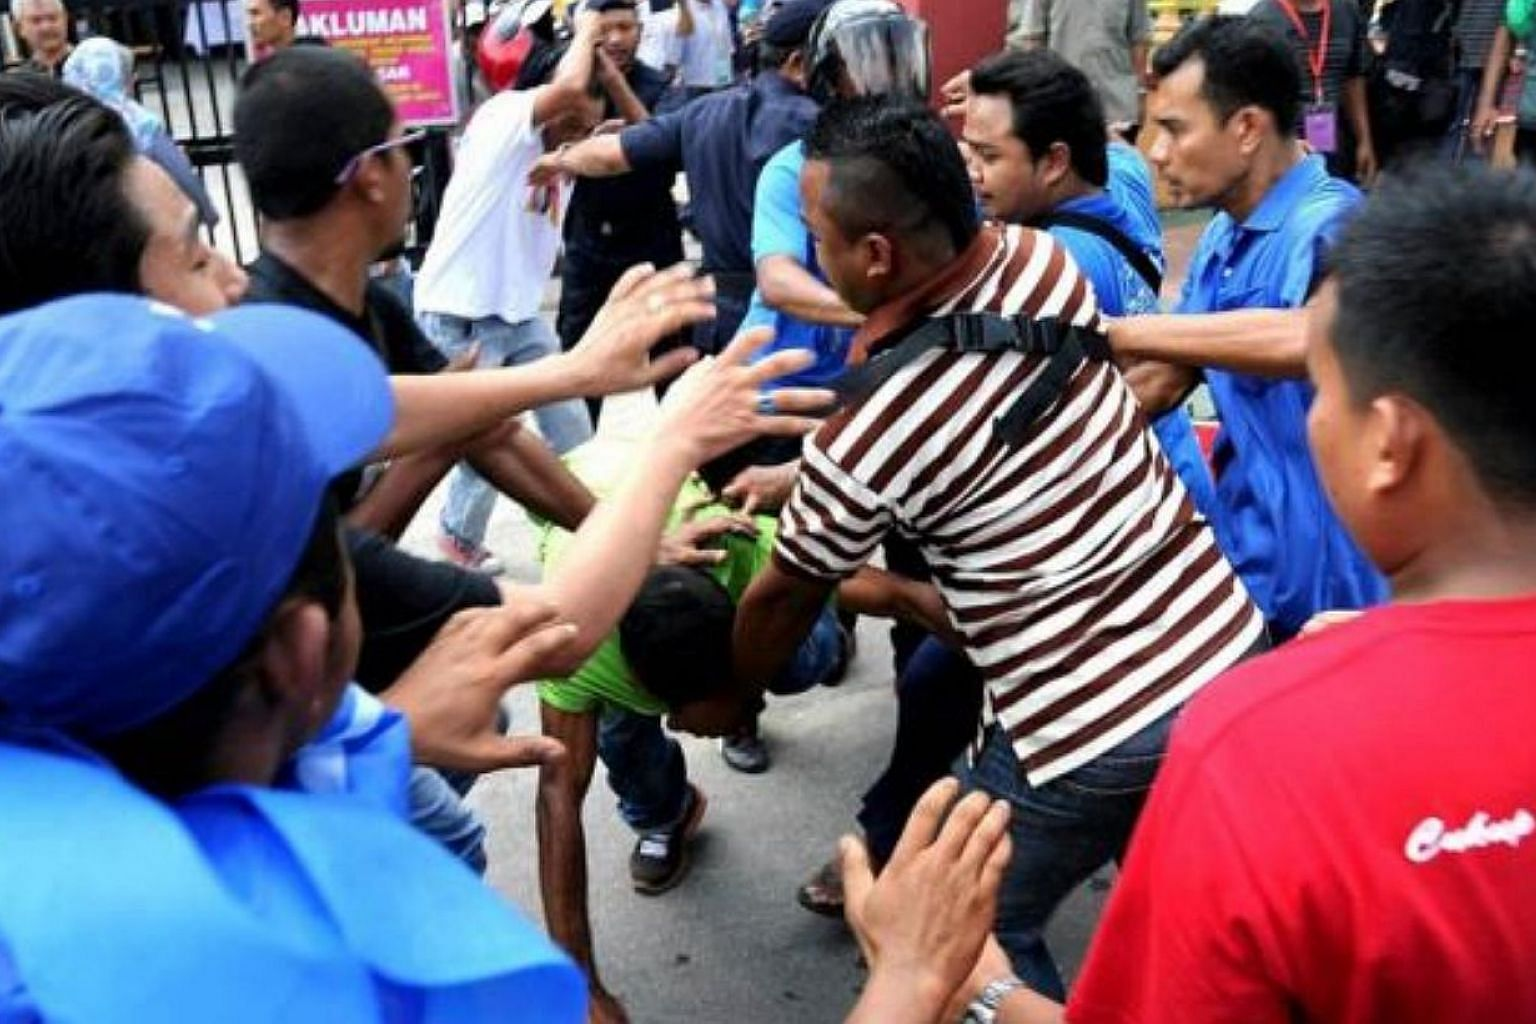 Rival supporters clash outside SK Tanah Liat polling centre during the Permatang Pauh by-election. -- PHOTO: THE STAR/ASIA NEWS NETWORK